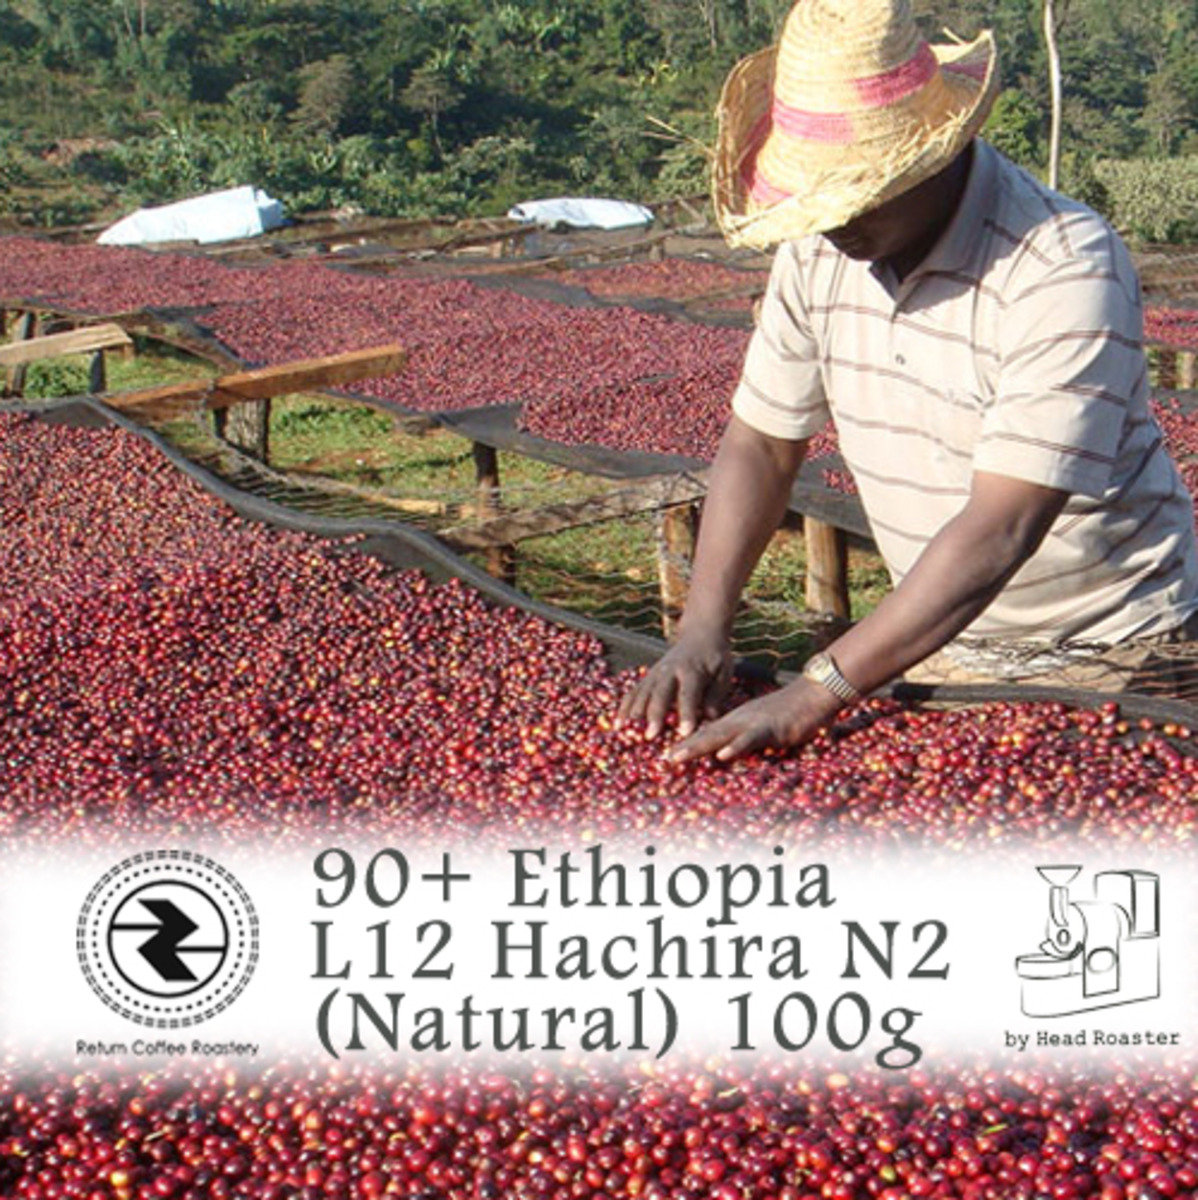 L12 Hachira N2 (Natural) by Head Roaster